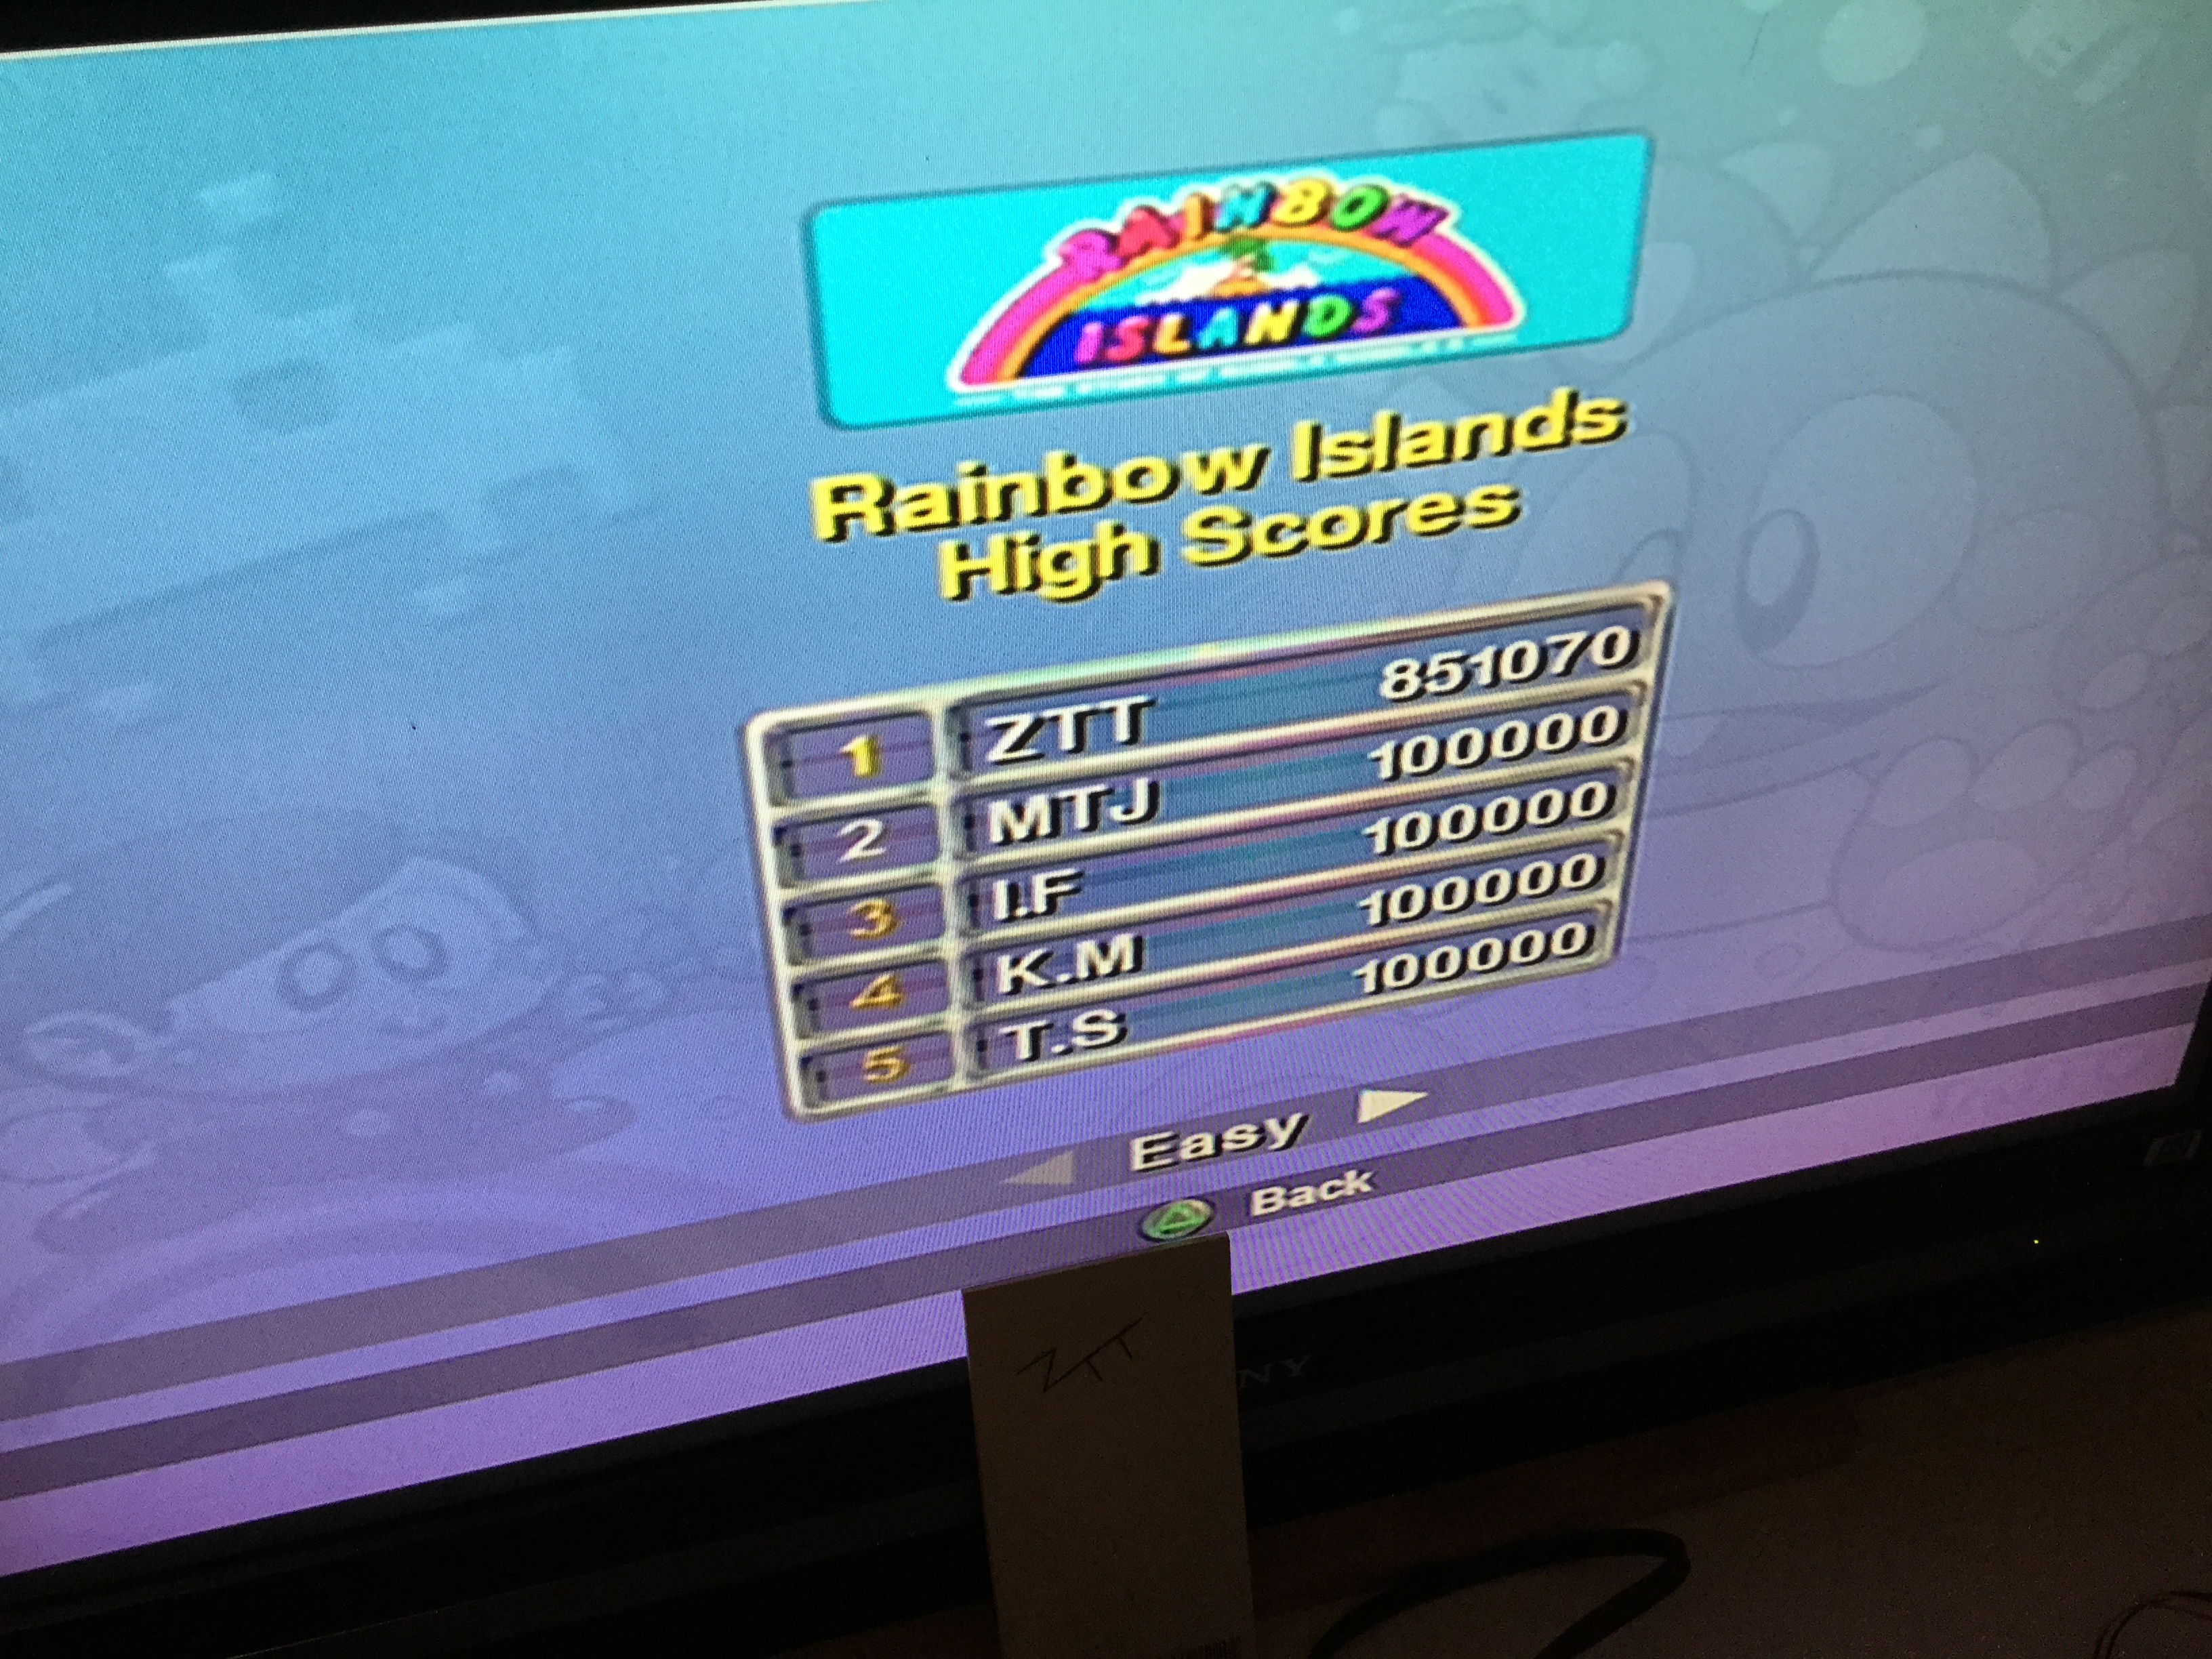 Frankie: Taito Legends: Rainbow Islands [Easy] (Playstation 2) 851,070 points on 2018-03-23 13:16:23